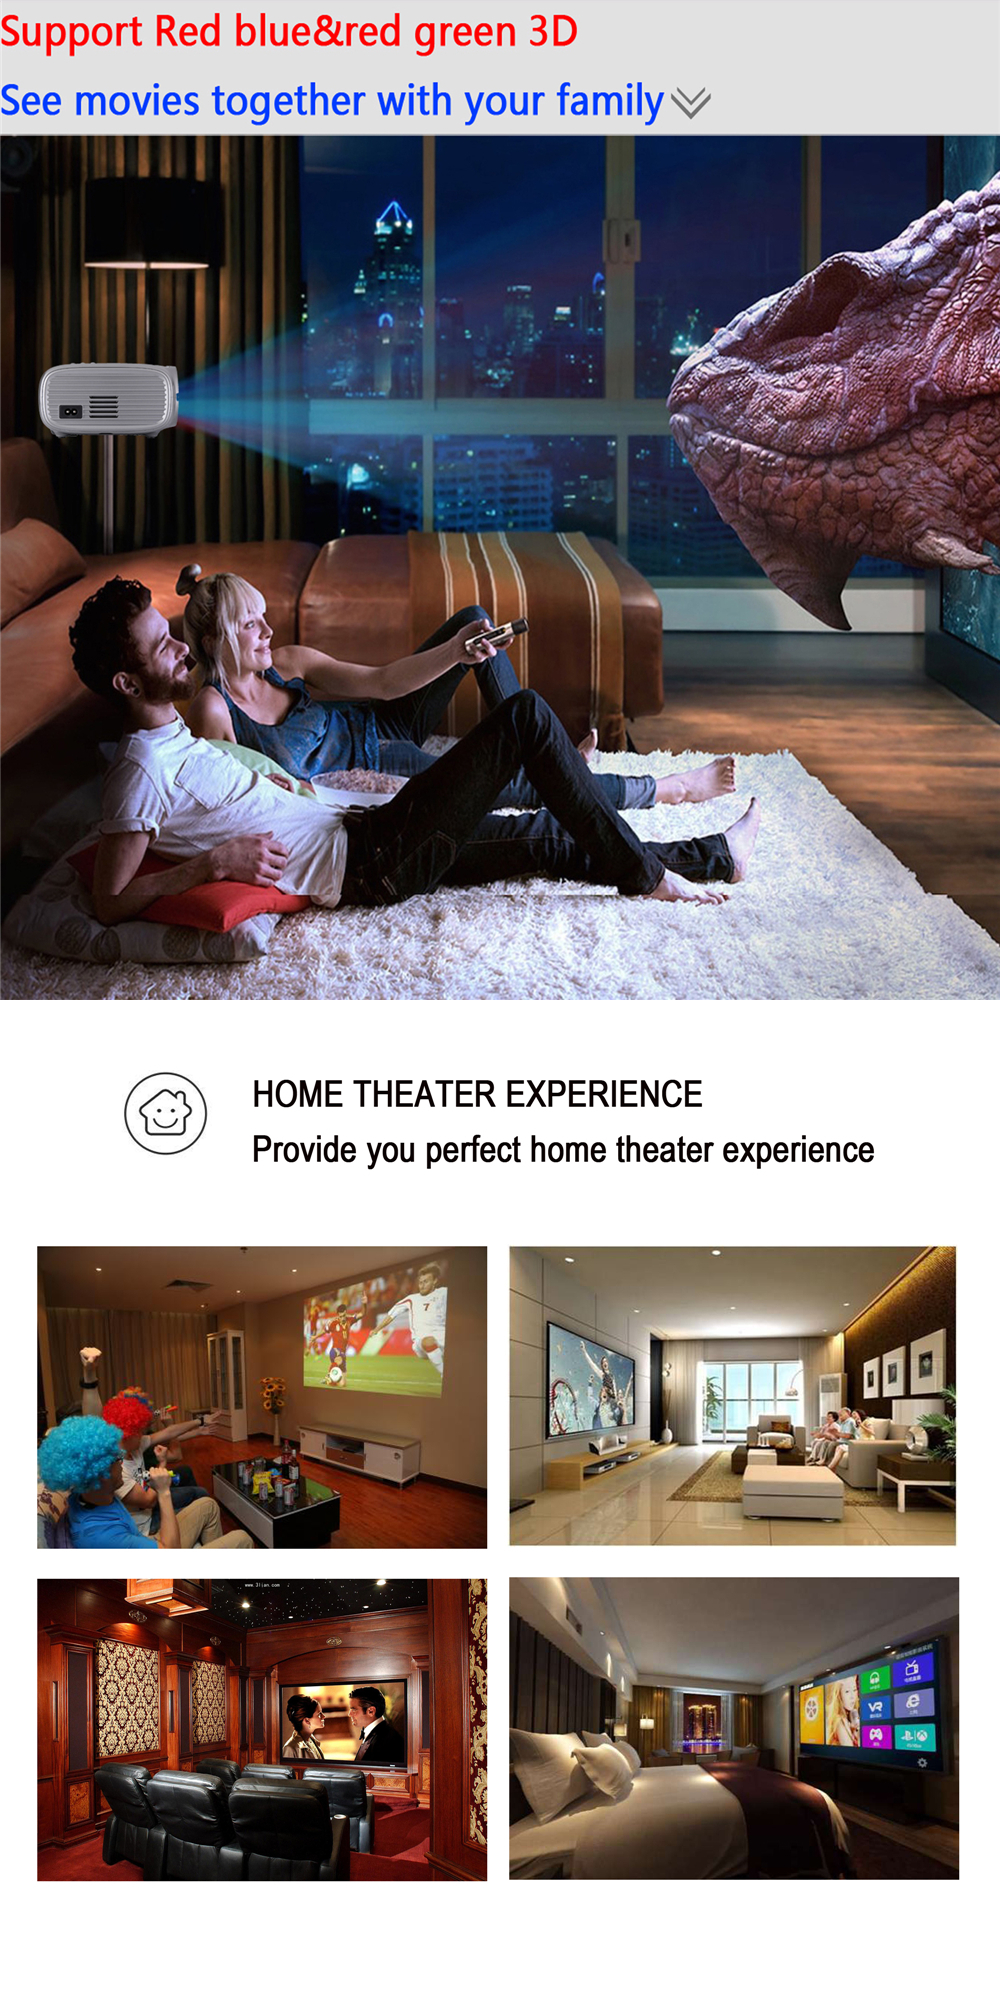 images/new-electronics/A1543997PB/uhappy-u43-pro-lcd-projector-720p-max-support-1080p-2600-lumens-led-projector-mini-home-theater-projector-1gb-8gb-android-version-plusbuyer_96.jpg